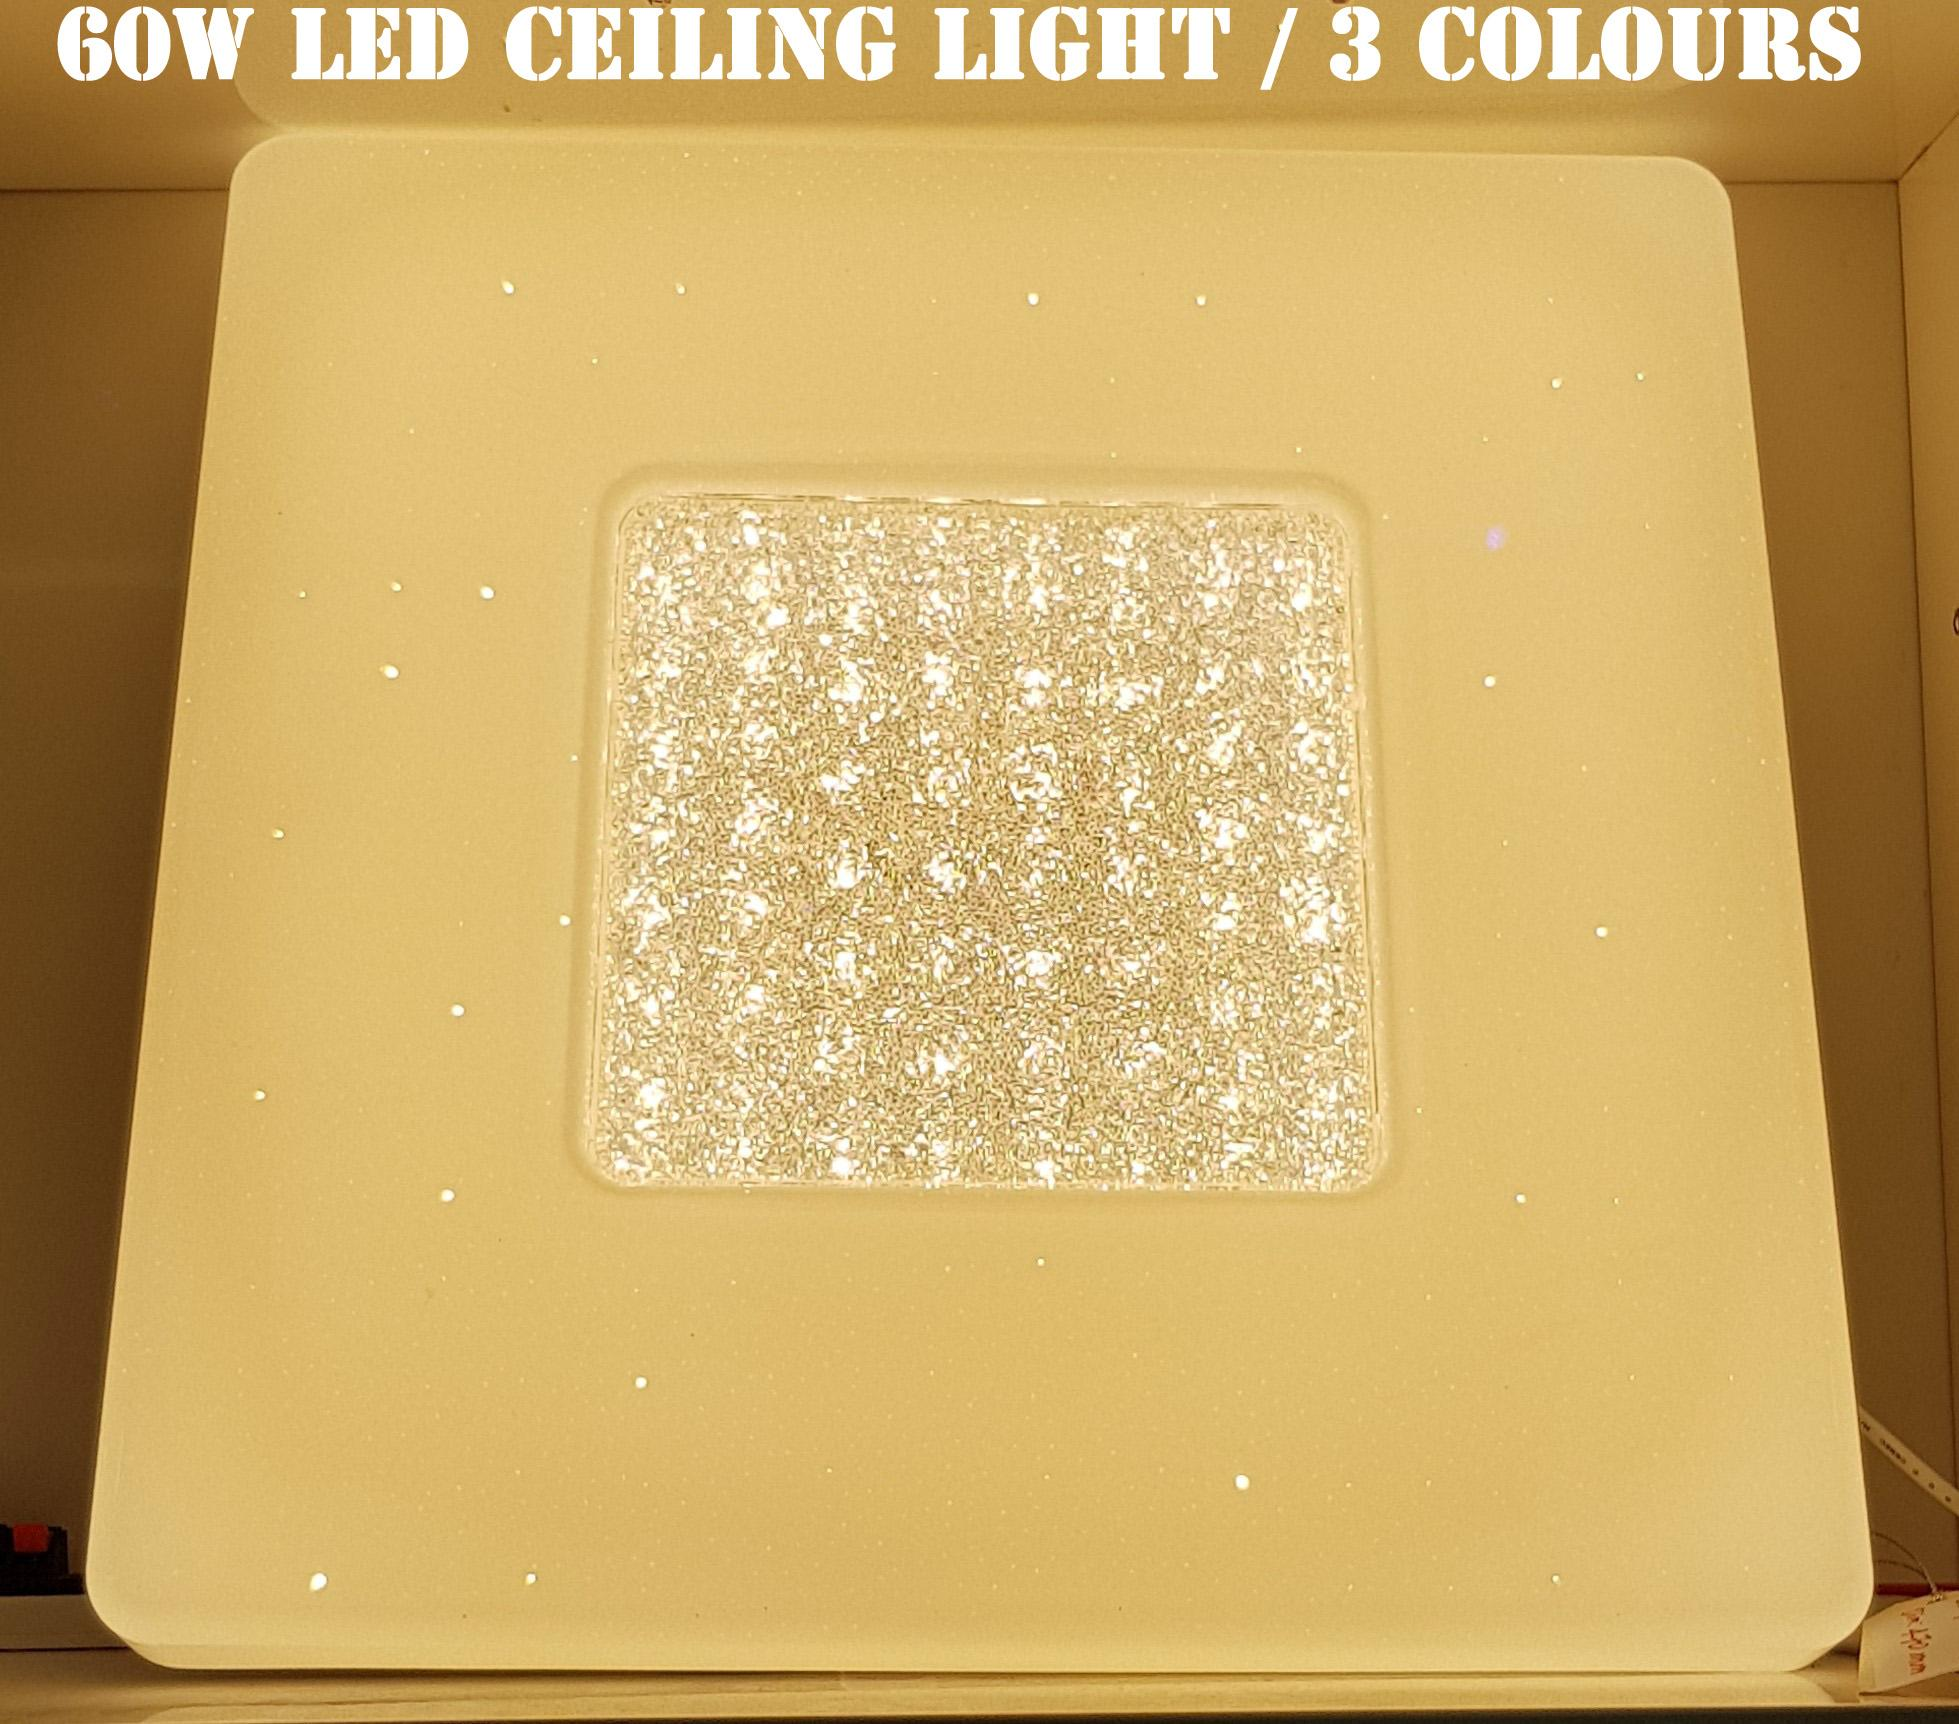 Square 60W Super bright 3 colour Dimmable crystal LED ceiling Light with Remote control /LED LIGHT / LED CEILING LIGHT / LED DOWN LIGHT / Dimmable Ceiling Light - PROACTIVE SUPER MALL